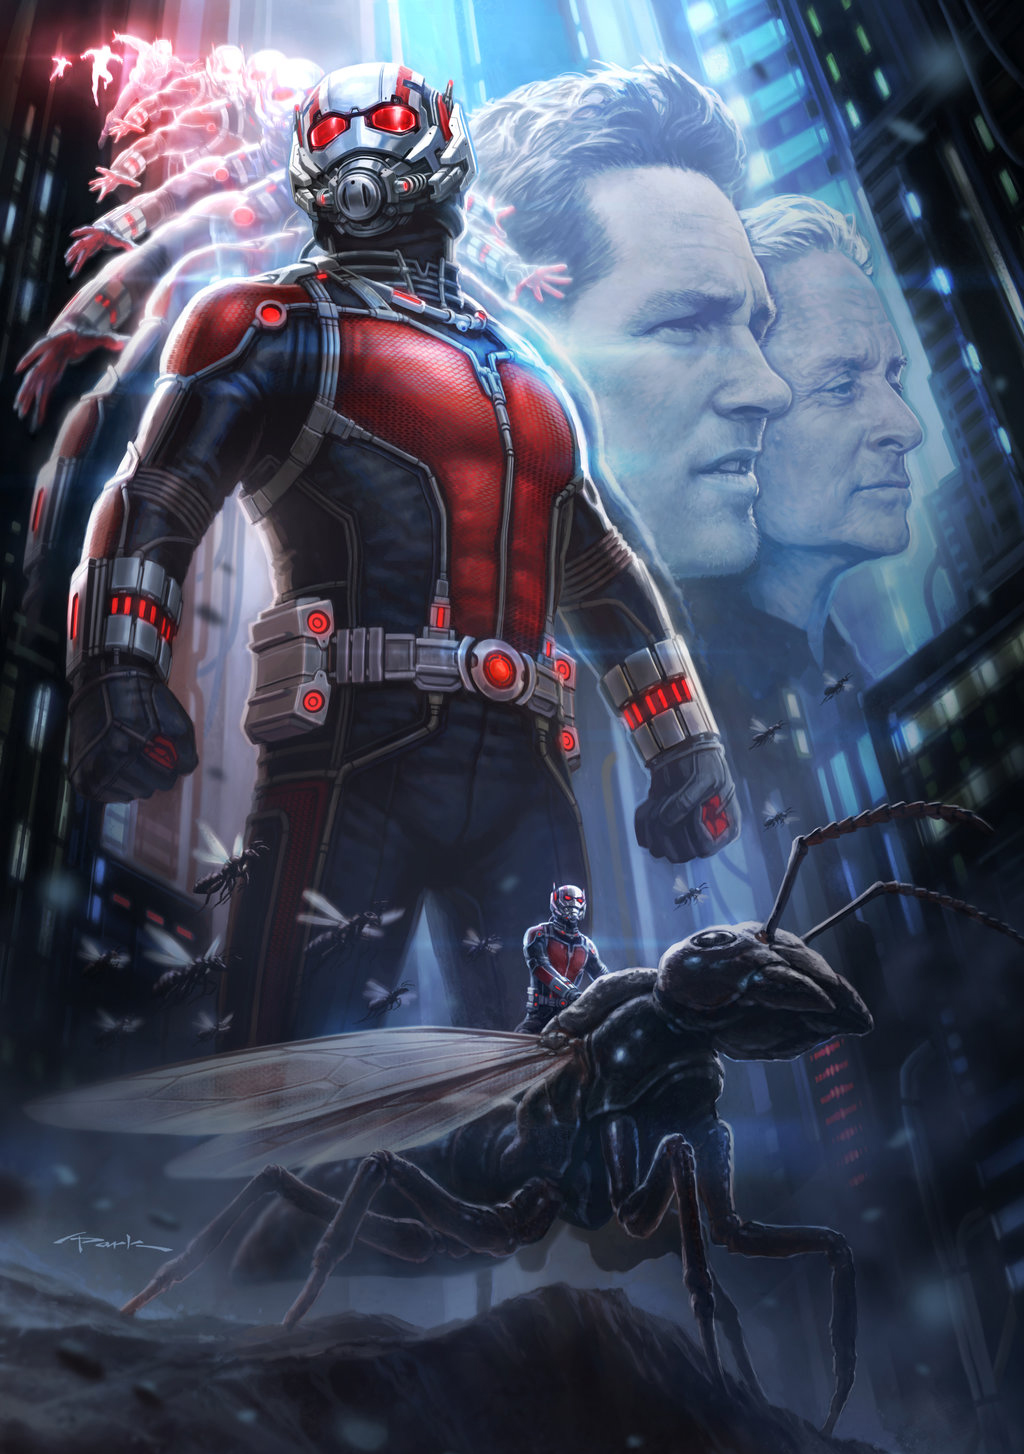 ant_man__hi_res_textless_poster__by_ihaveanawesomename-d7xy4mz.jpg